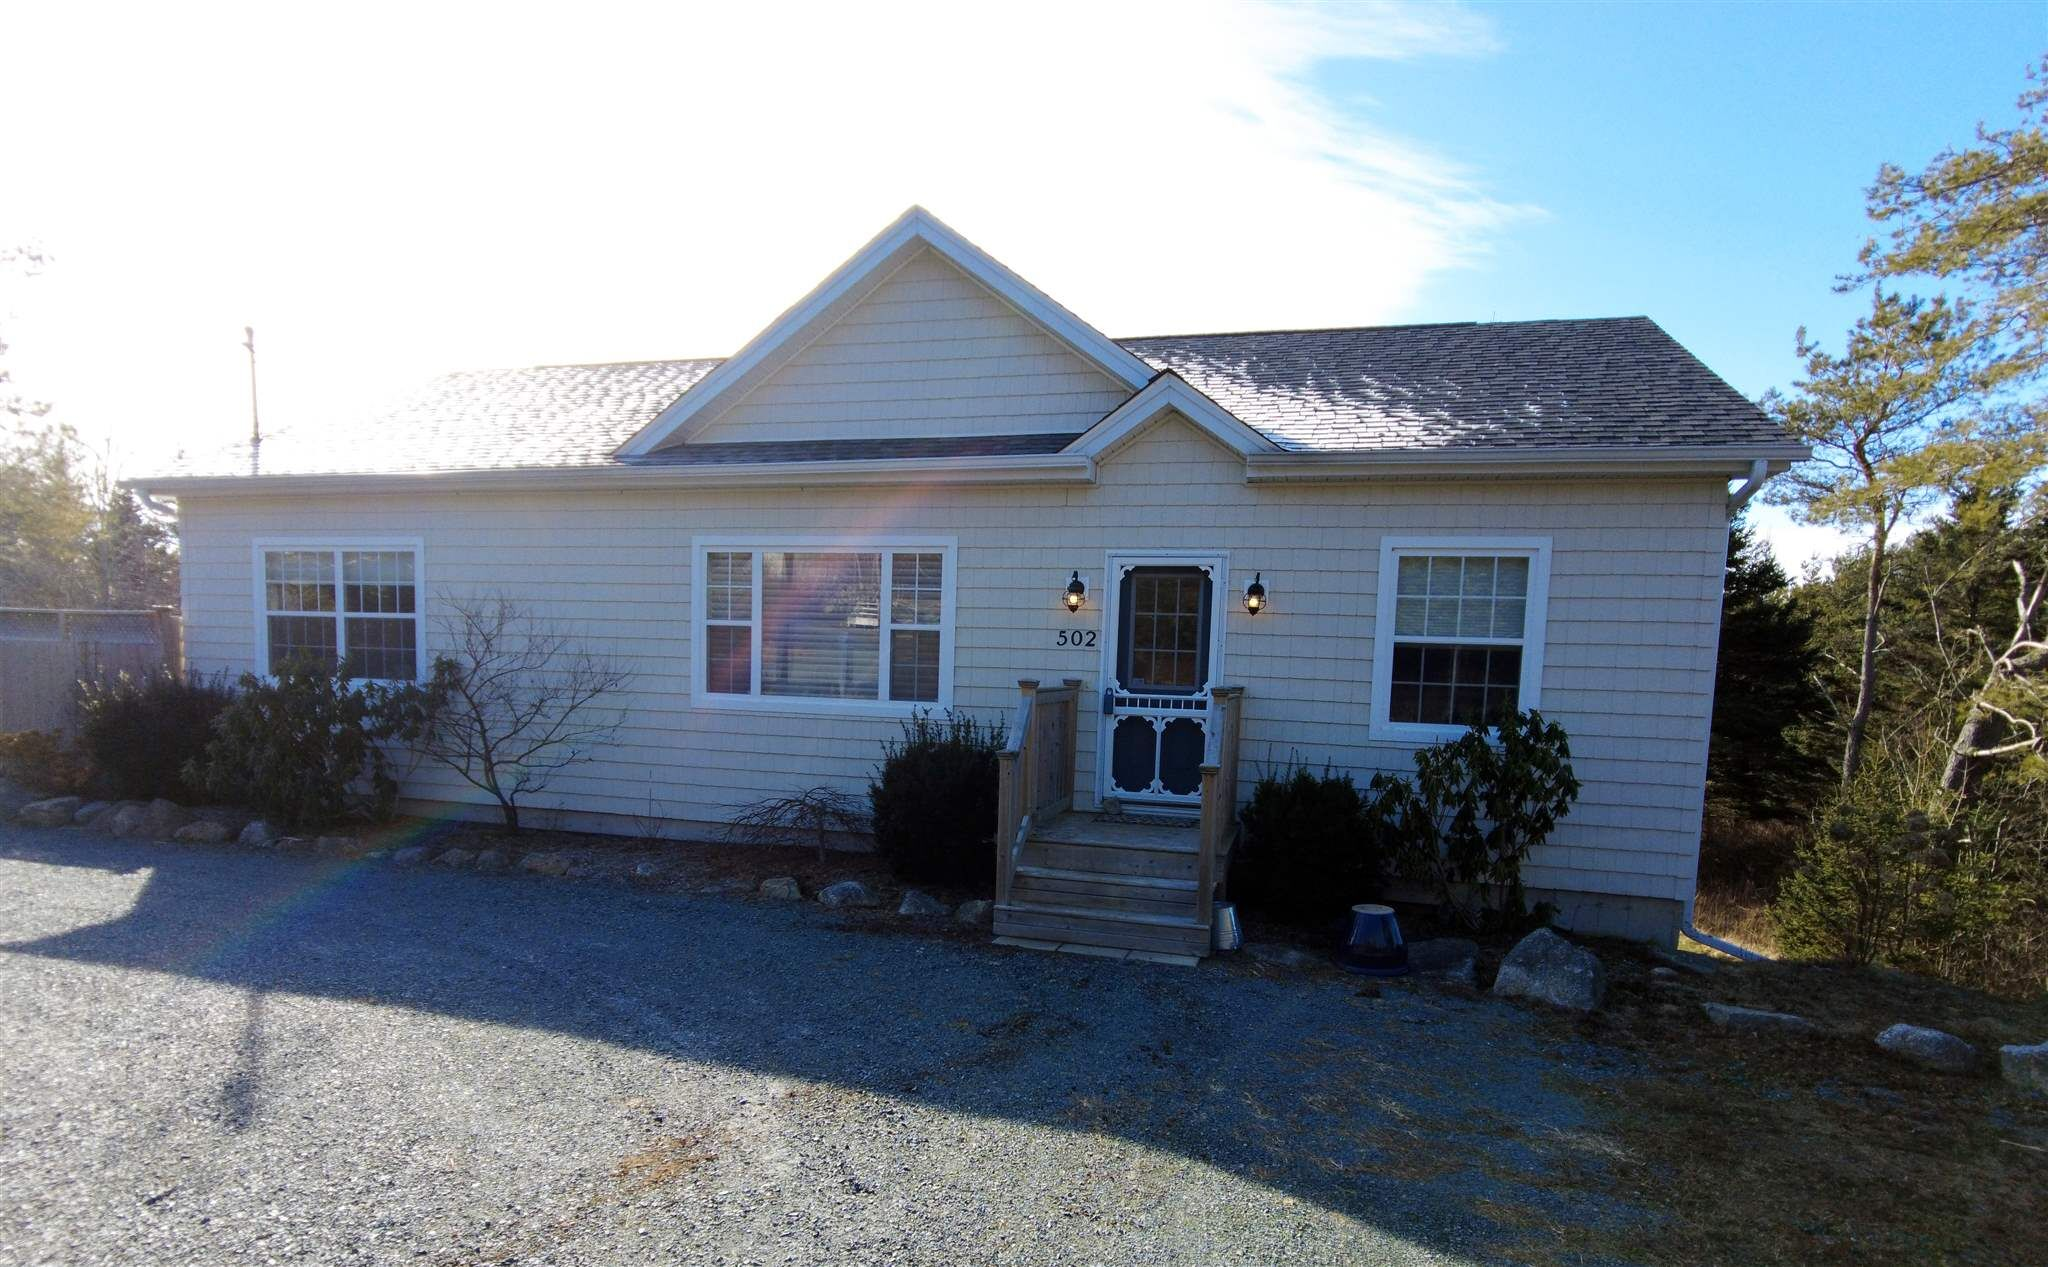 502 Islandview Drive, Boutiliers Point (MLS 202101032)